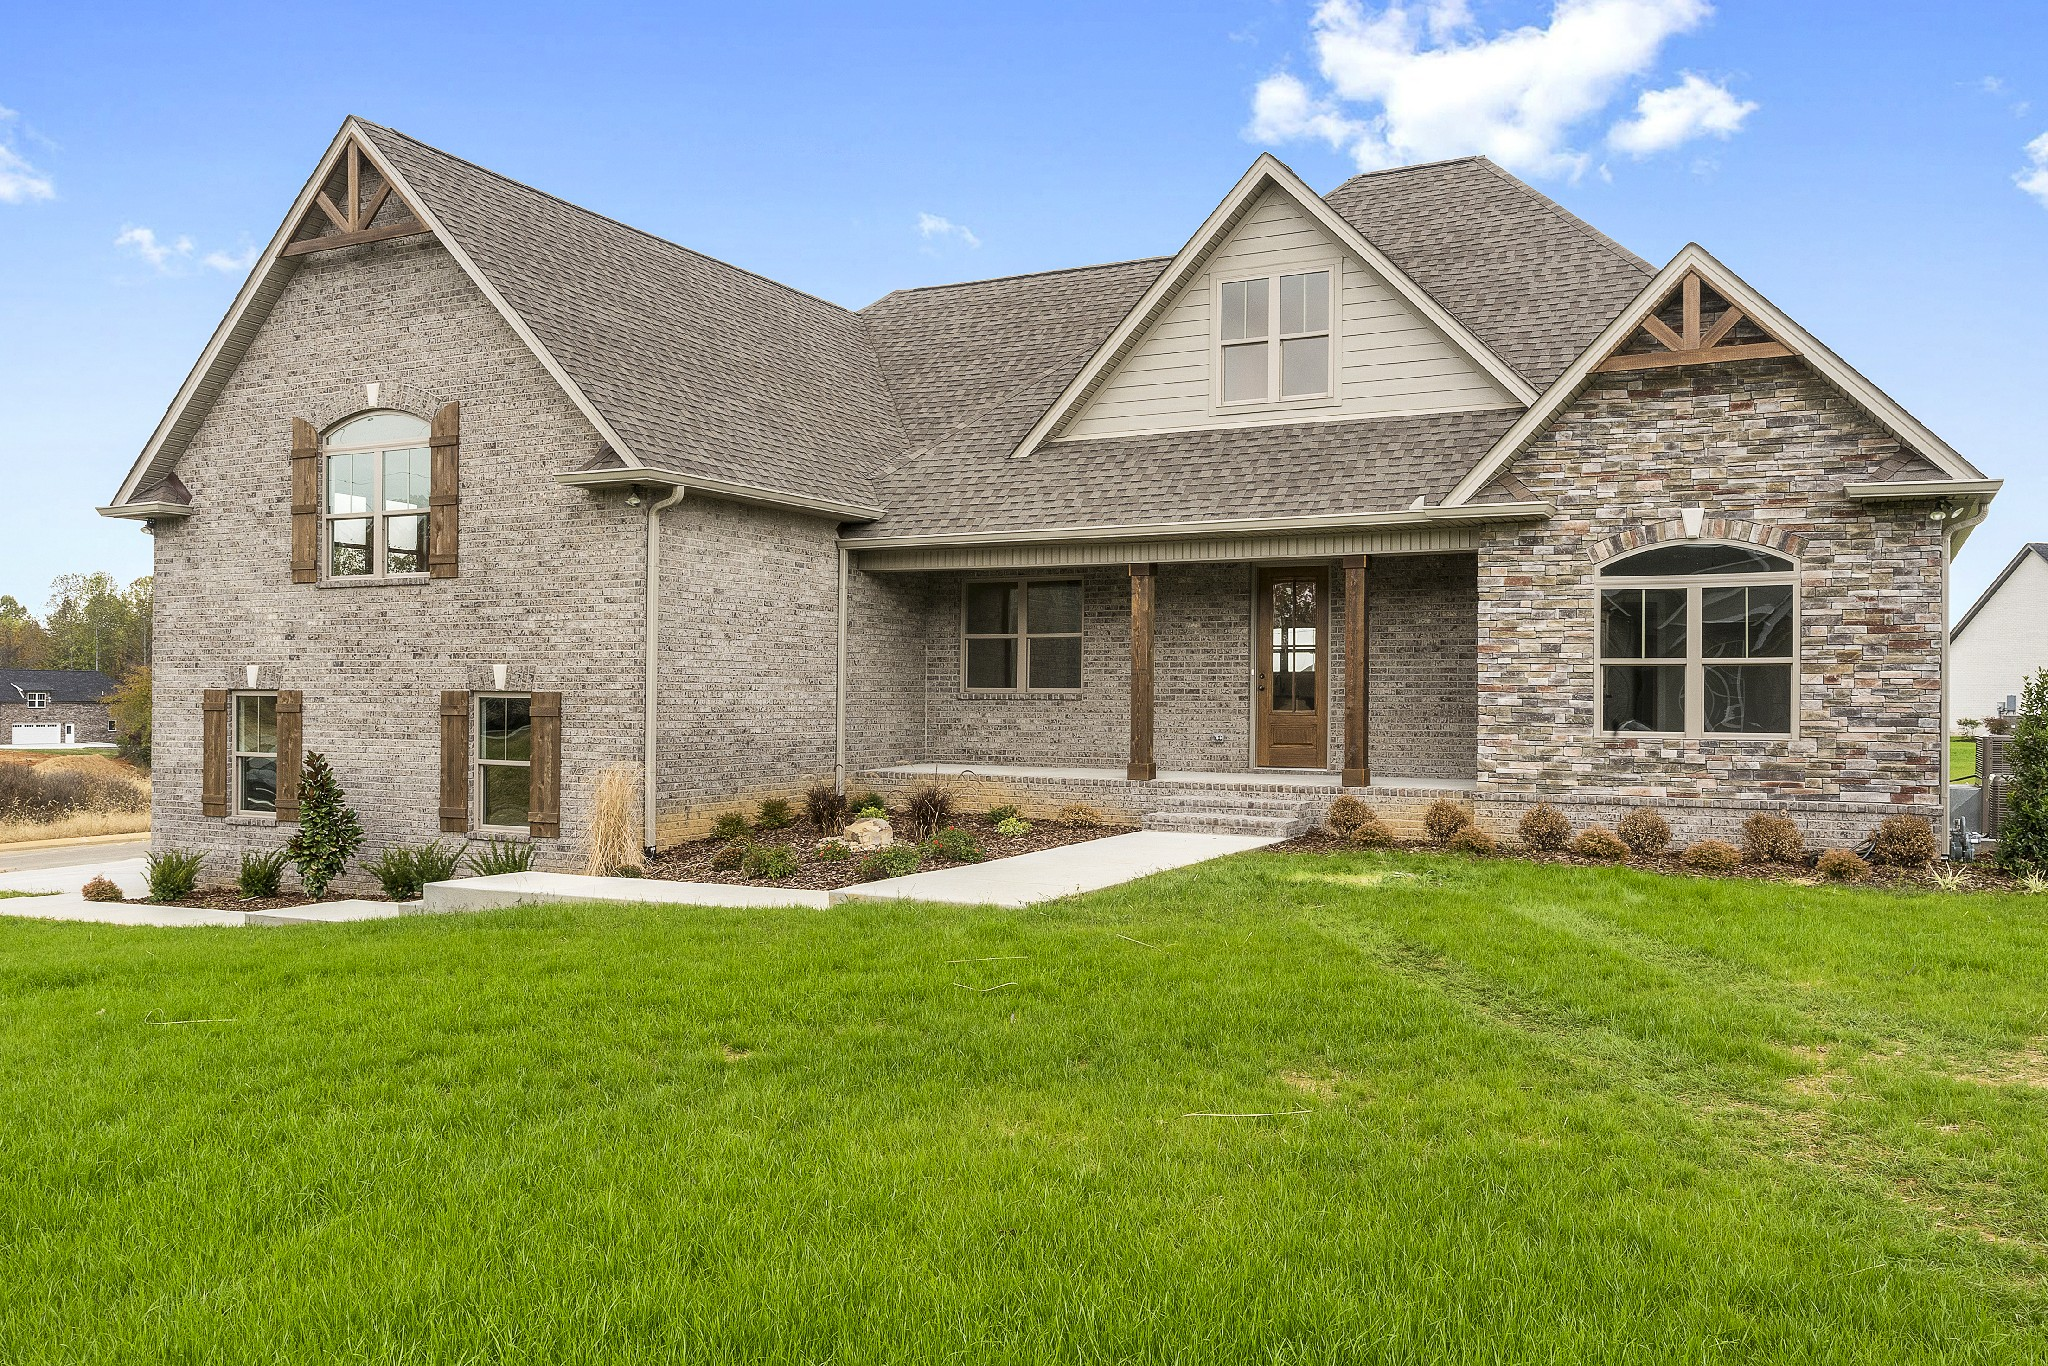 1128 Glasgow Lane, Greenbrier, TN 37073 - Greenbrier, TN real estate listing